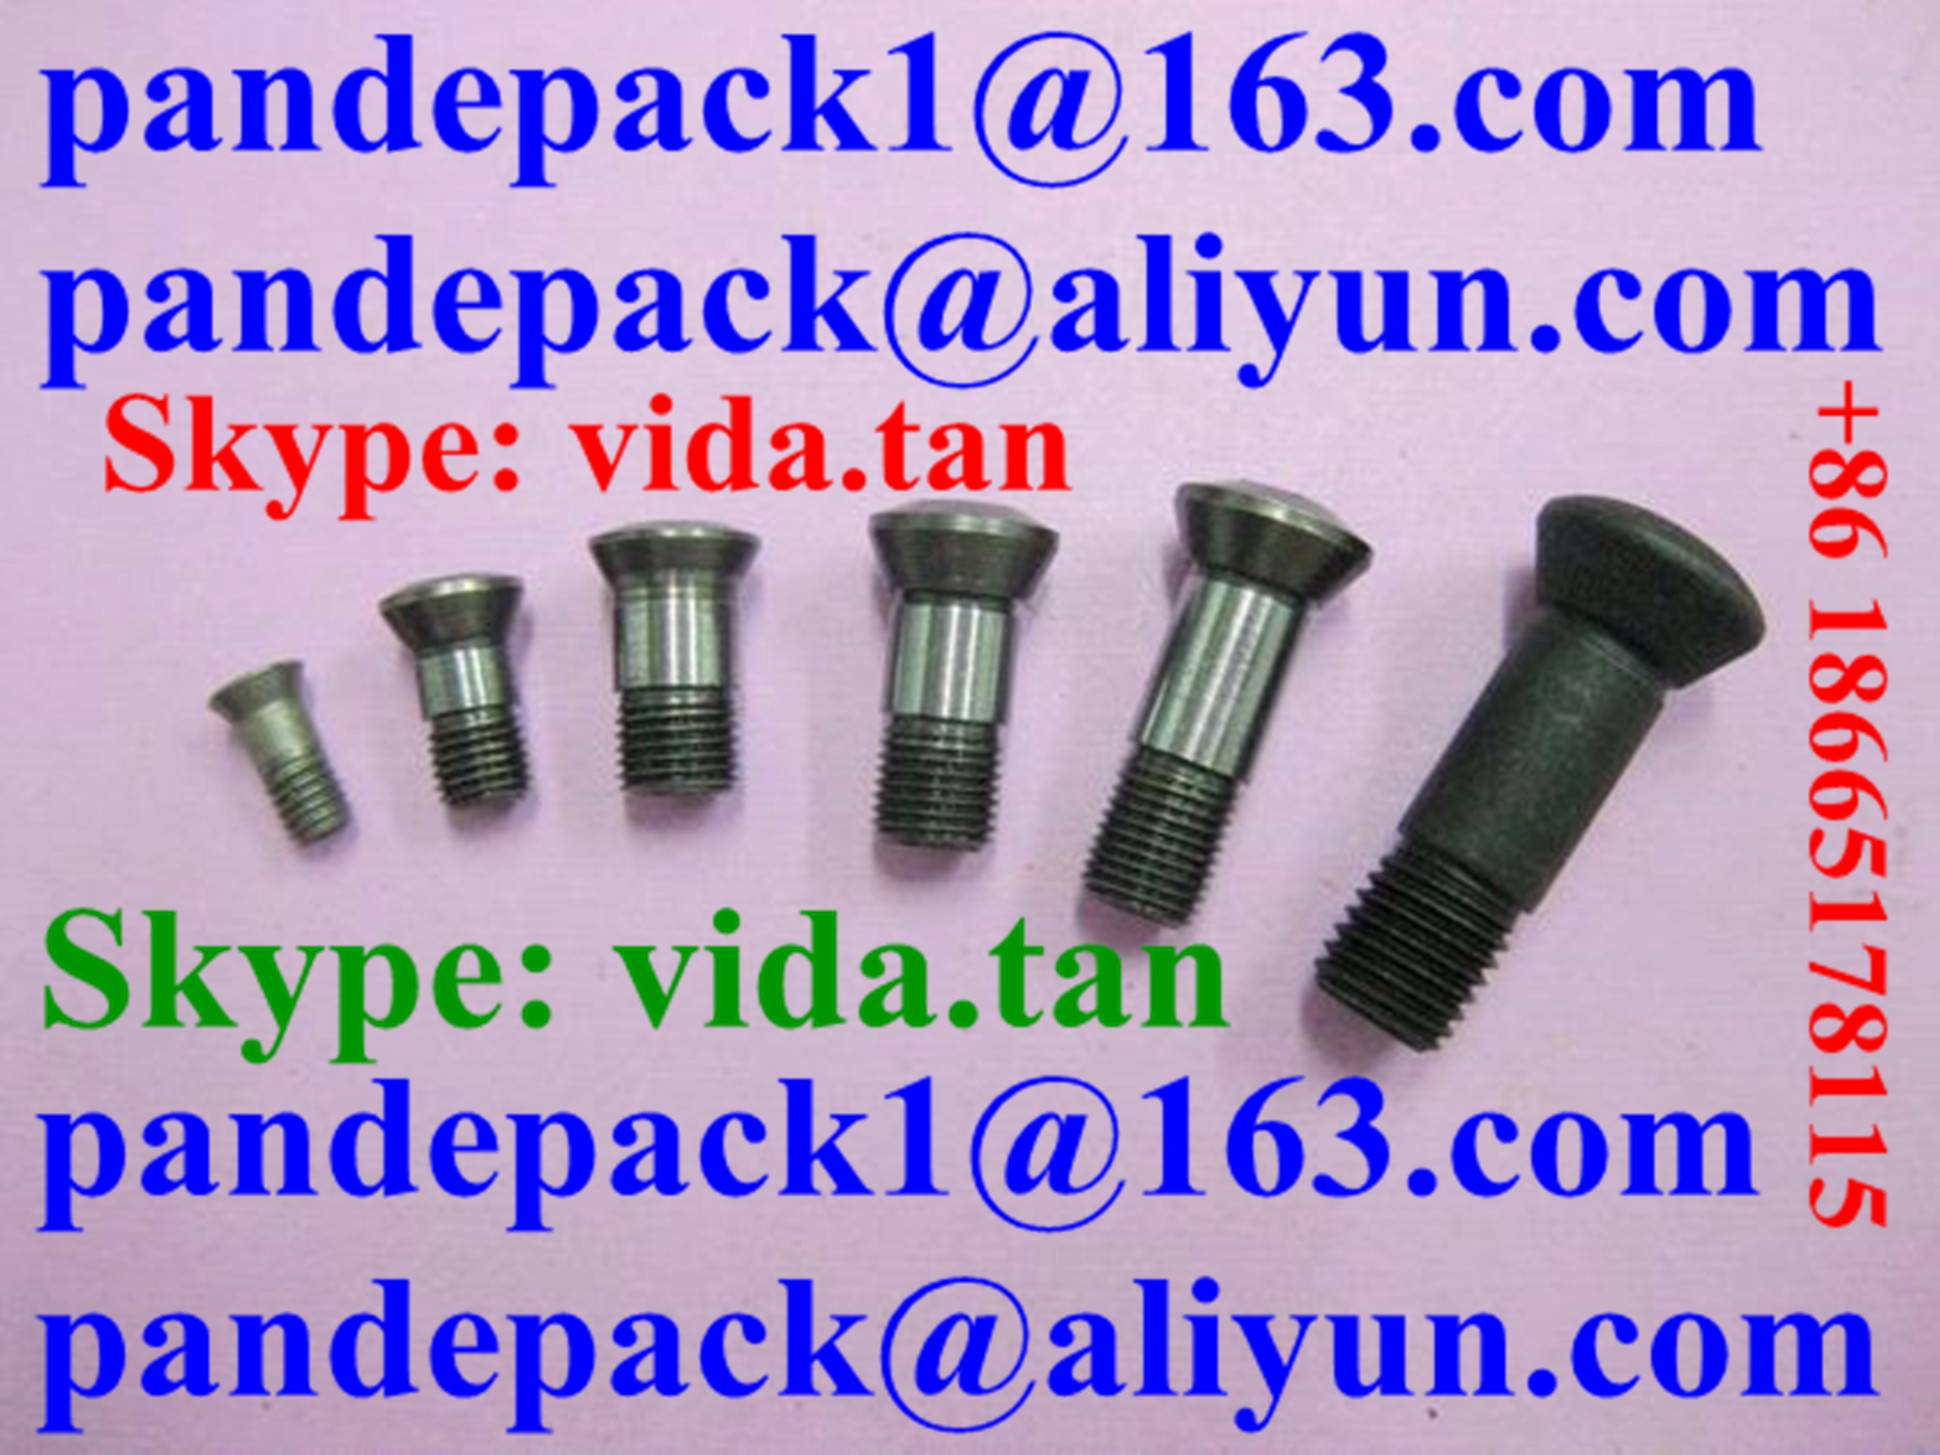 T2139 Torx Screw for Tool Holder/Walter Screw for Ball Head Tool Holder/CNC Tool Parts/Accessories